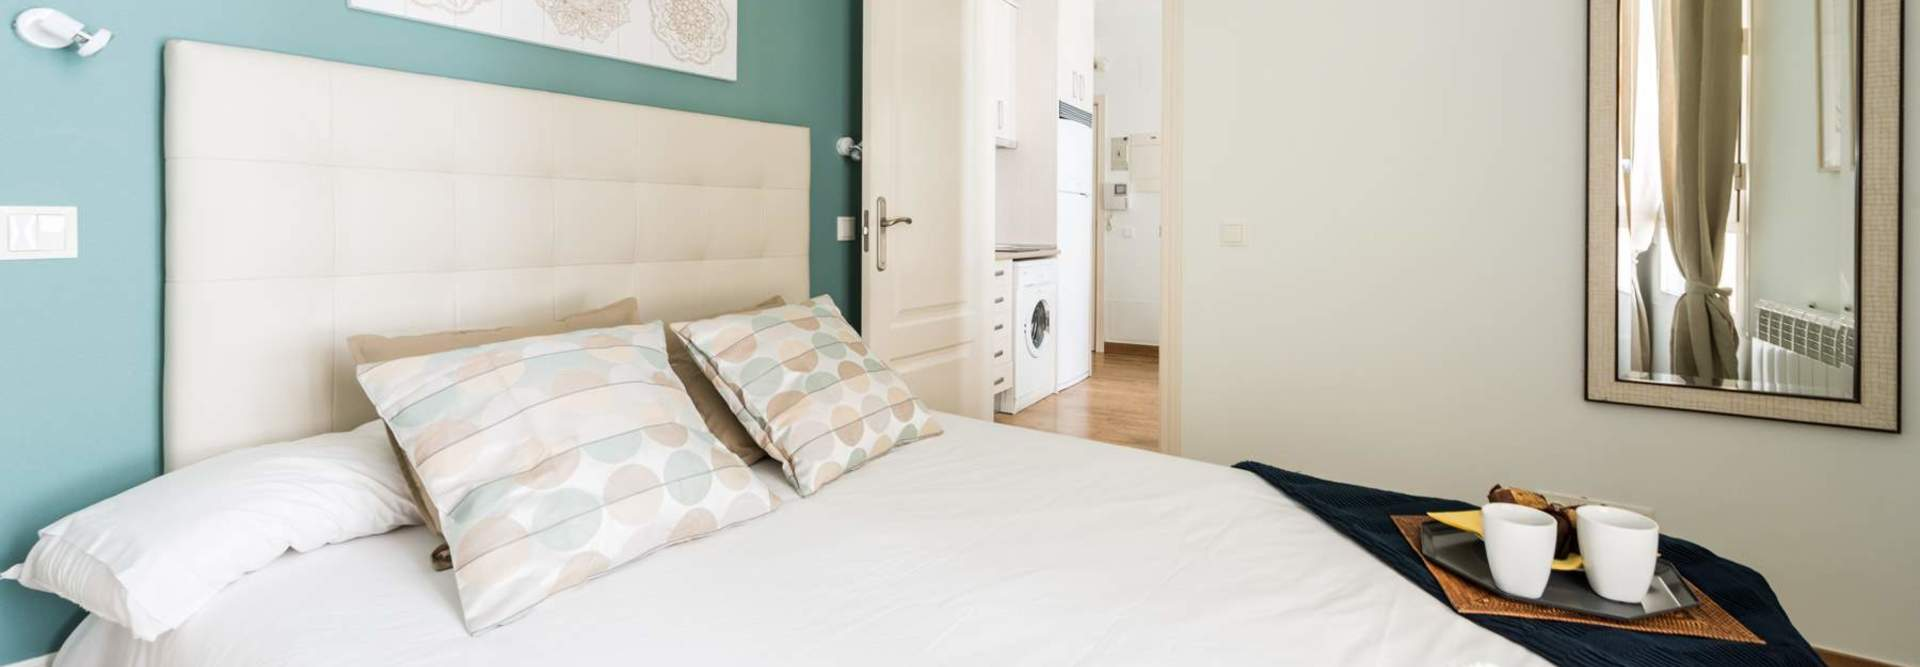 Home alquiler apartamento madrid centro por d as  17